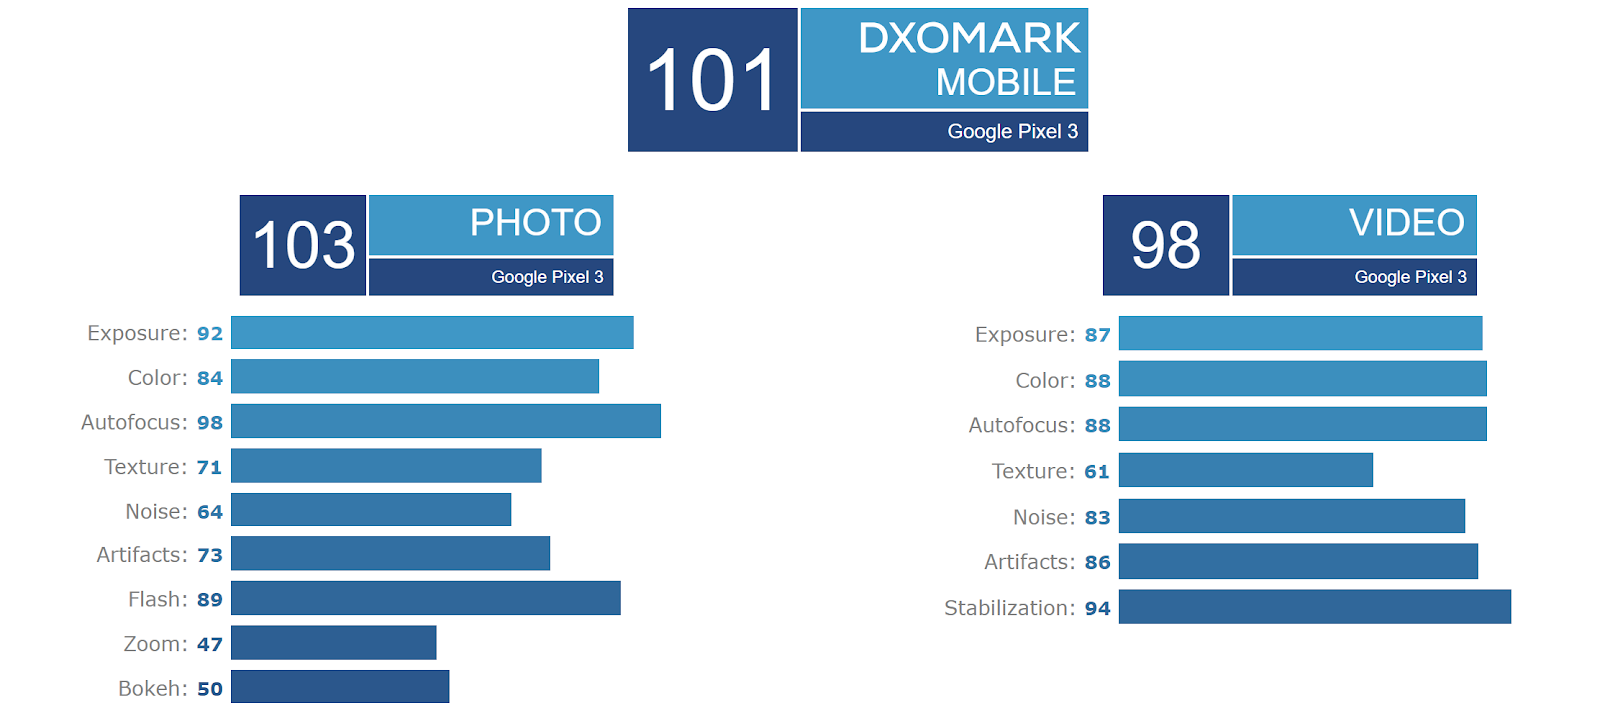 Google Pixel 3 Scores 101 on DxOMark, Ties With iPhone XR as Highest-Rated Single-Lens Phone